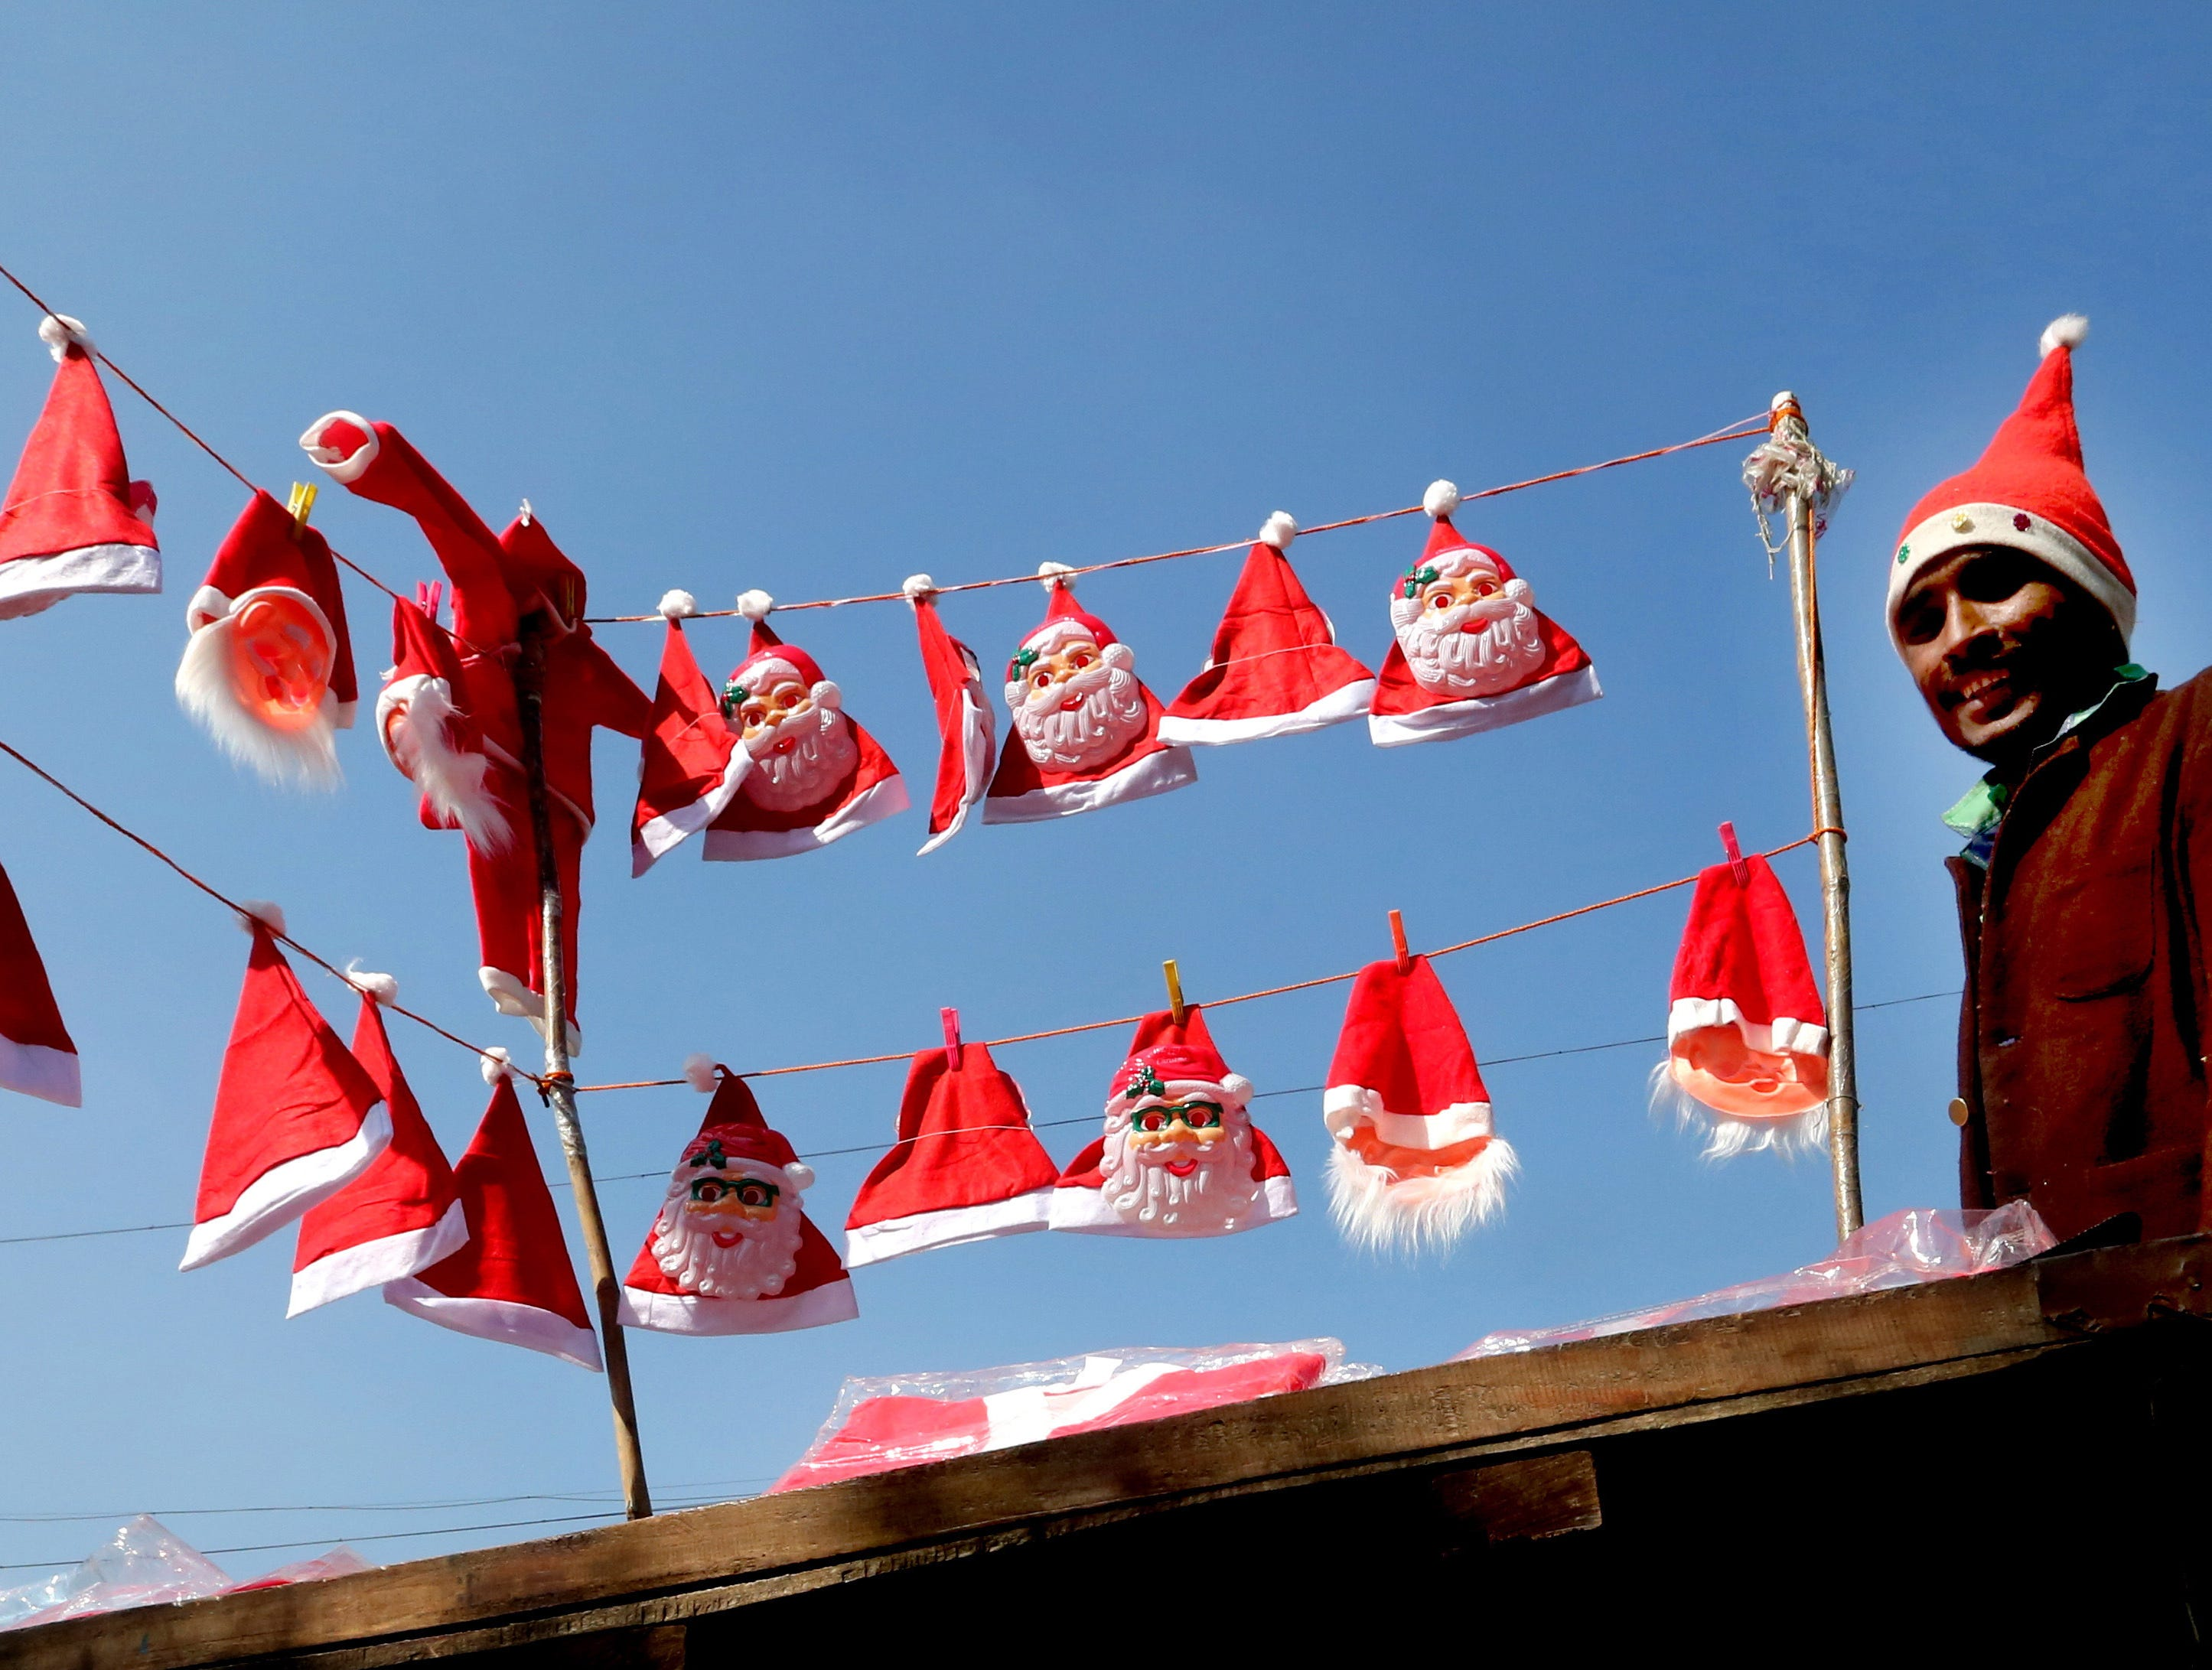 A roadside vendor sells Santa Claus caps and masks ahead of the Christmas festival in Bhopal, India on Dec. 19, 2018.